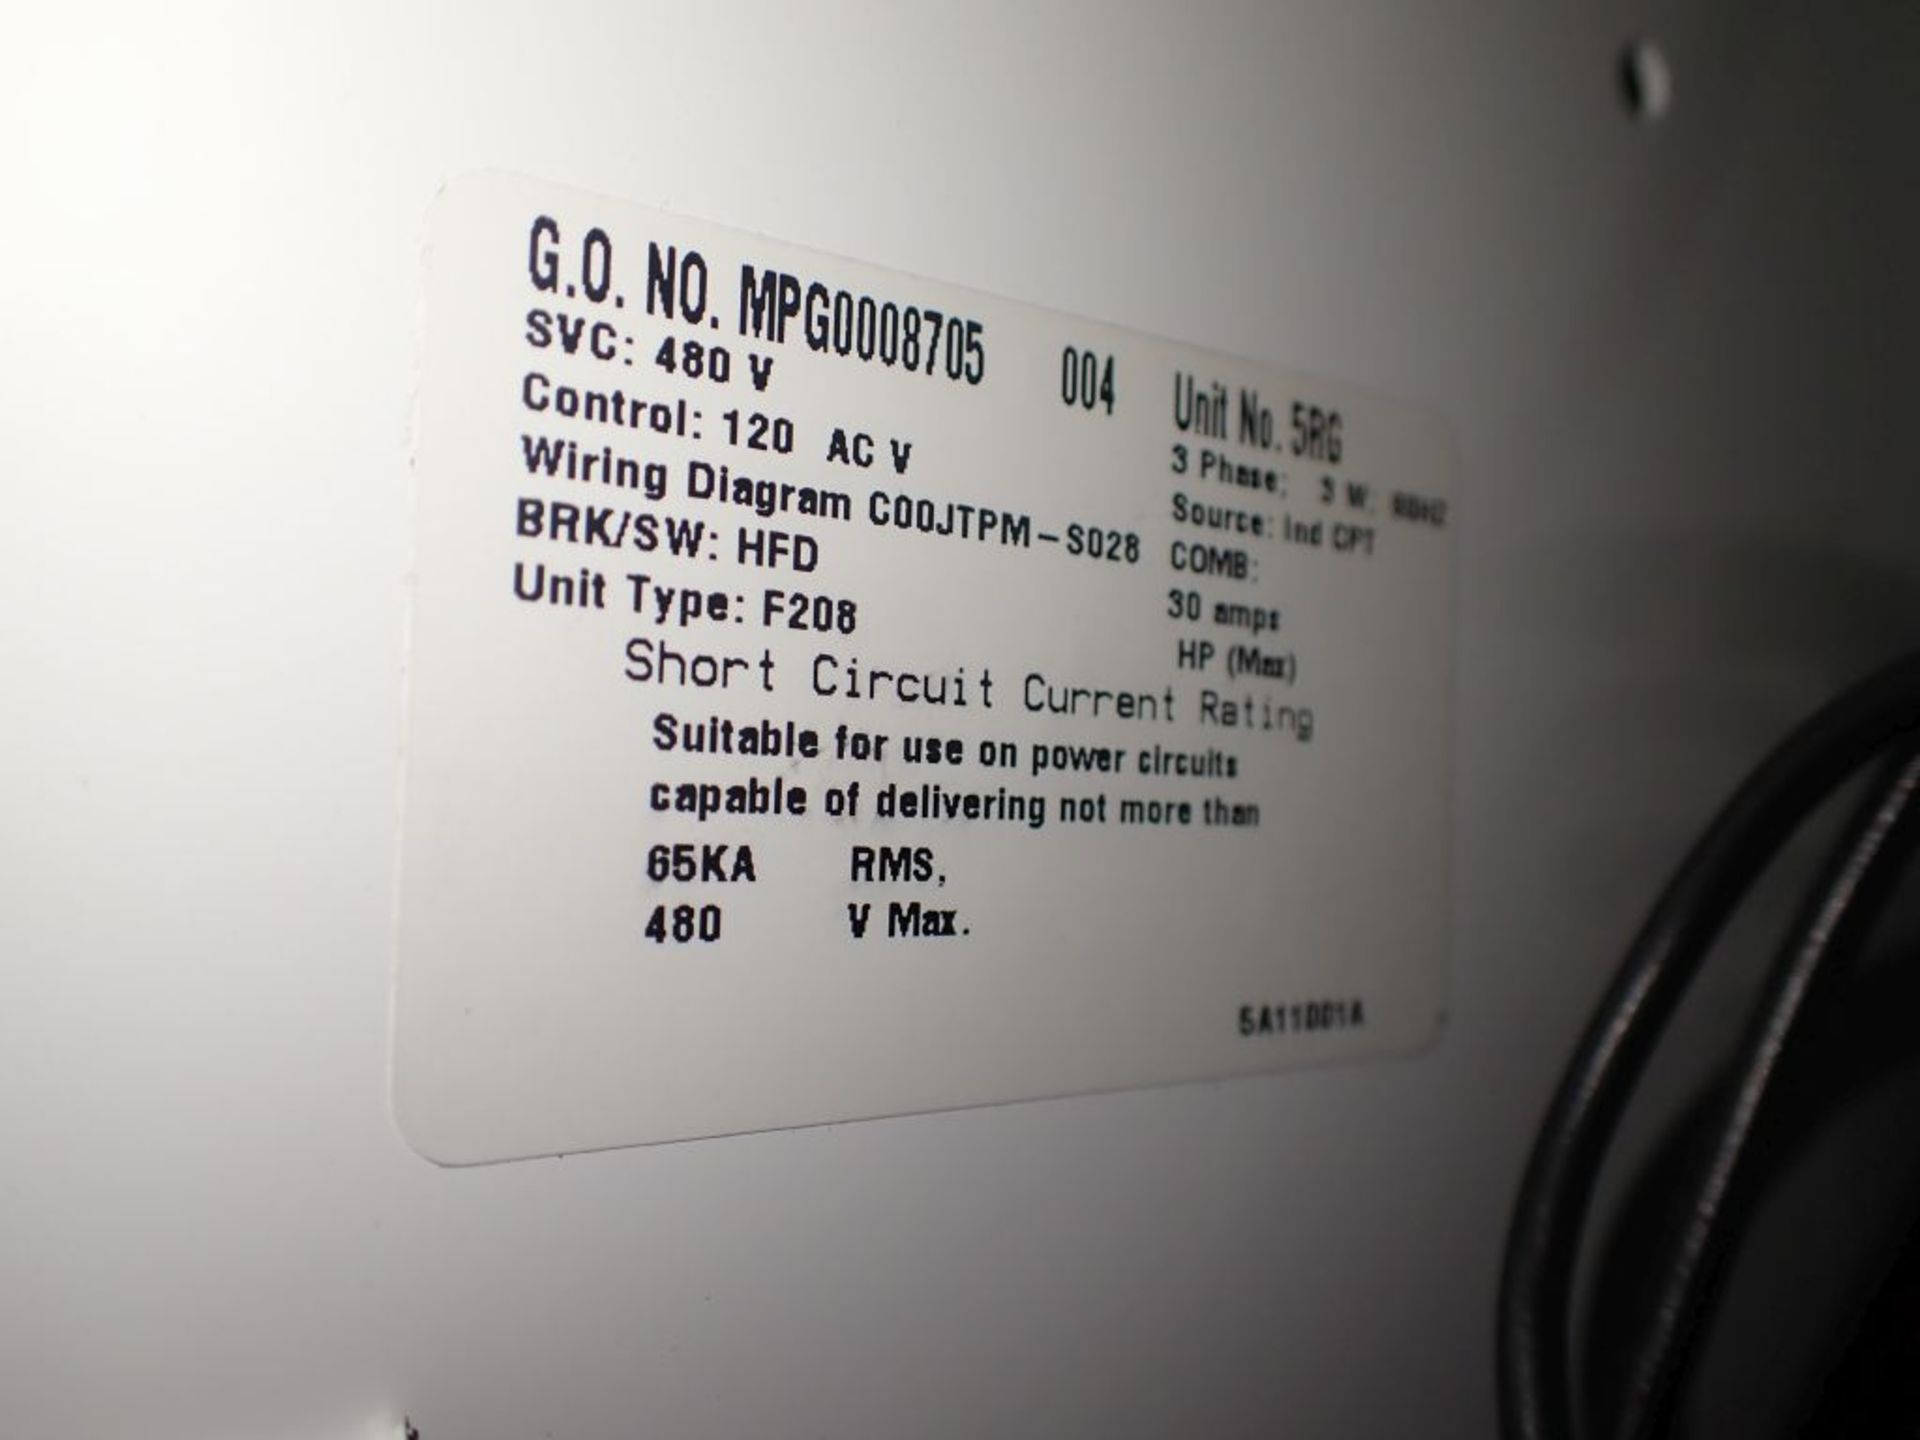 Eaton Freedom 2100 Series Motor Control Center | (2) F206-15A-10HP; (1) FDRB-250A; (1) FDRB-400A; ( - Image 65 of 104